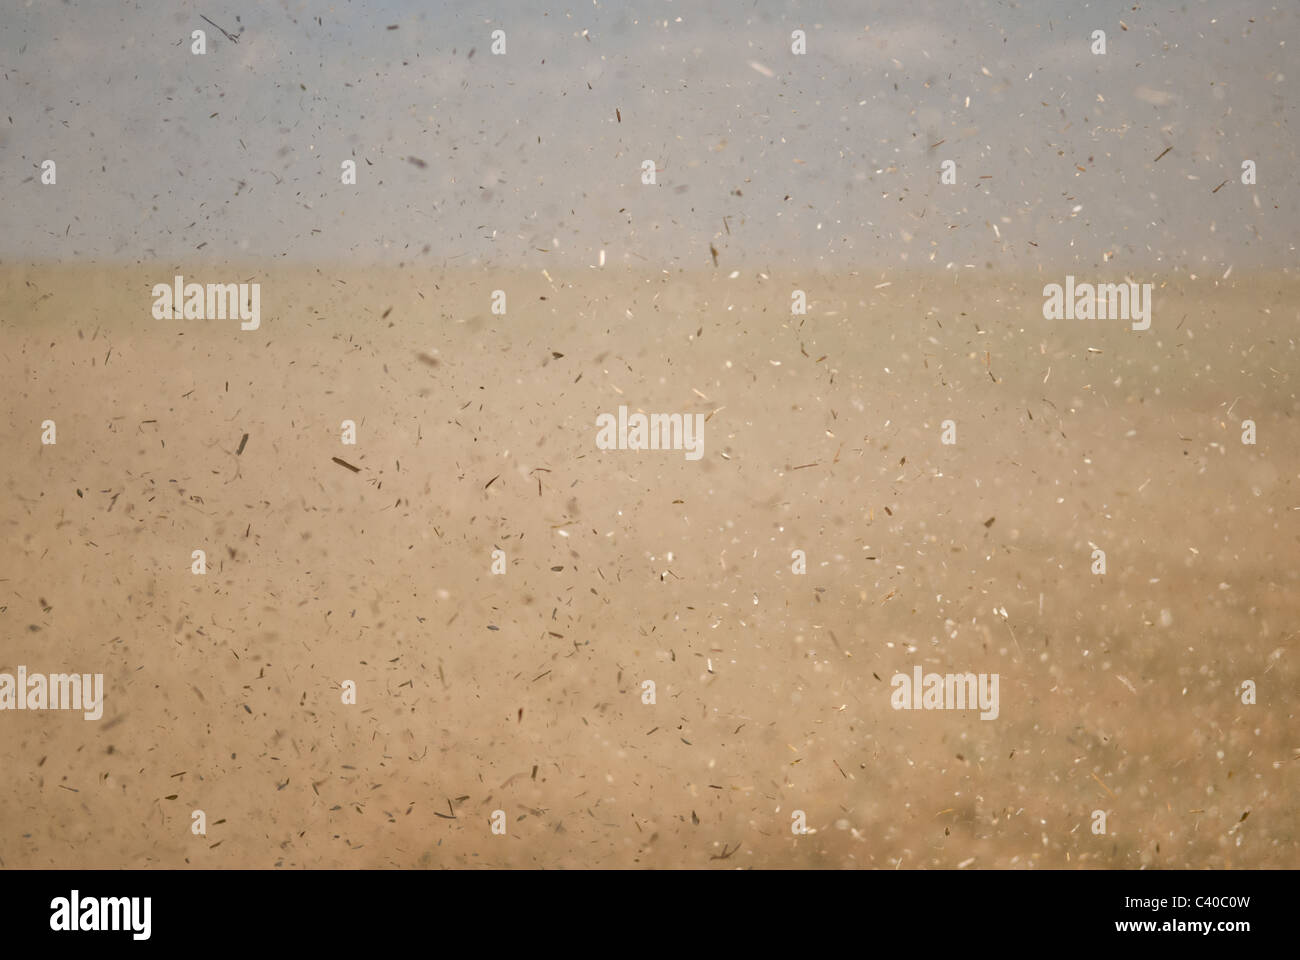 Dust particles being thrown in the air by a harvesting combine. - Stock Image